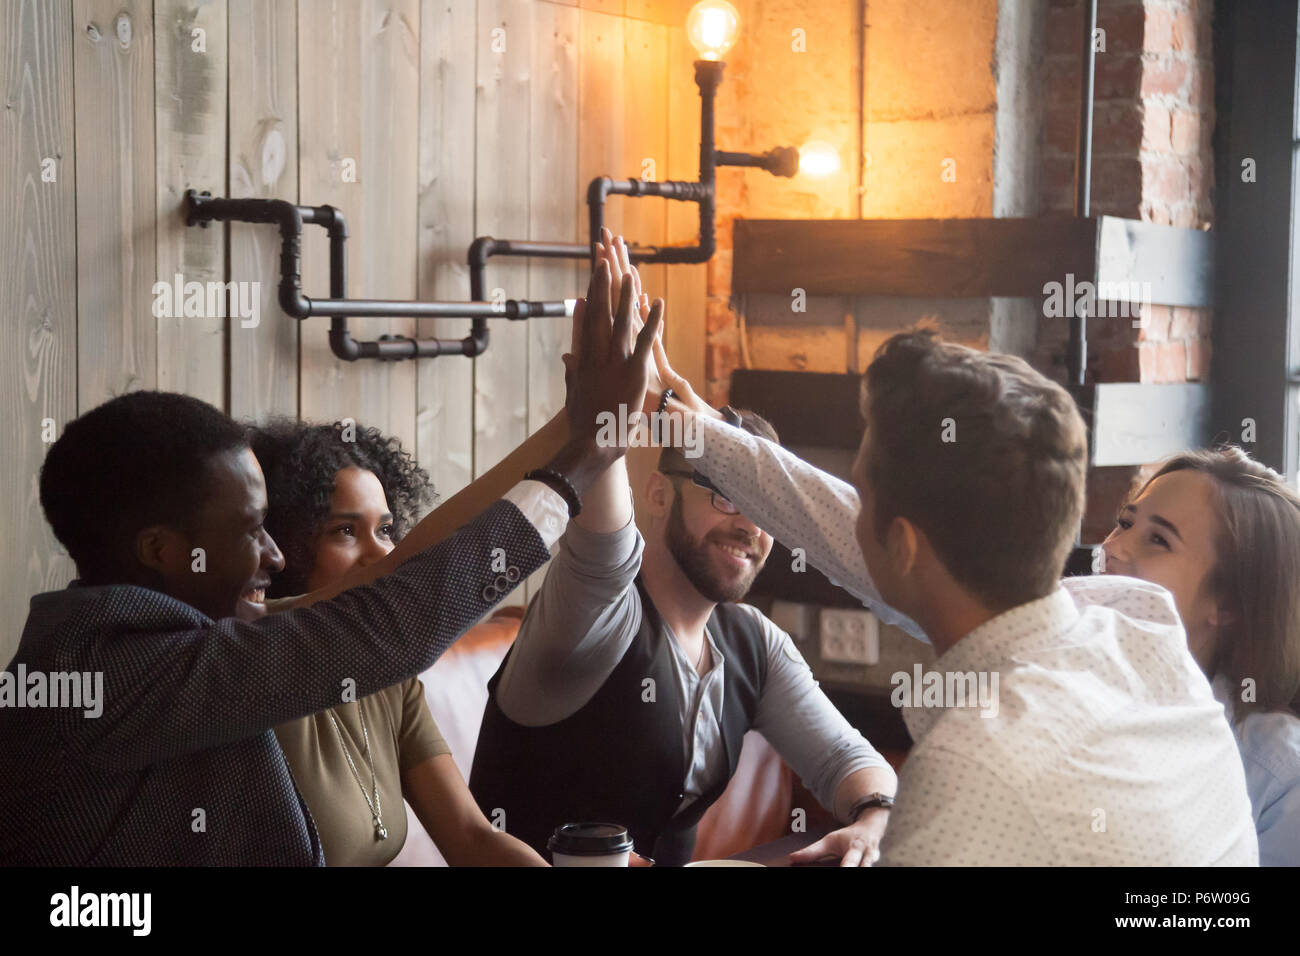 Smiling millennials giving high five during meeting in cafe - Stock Image